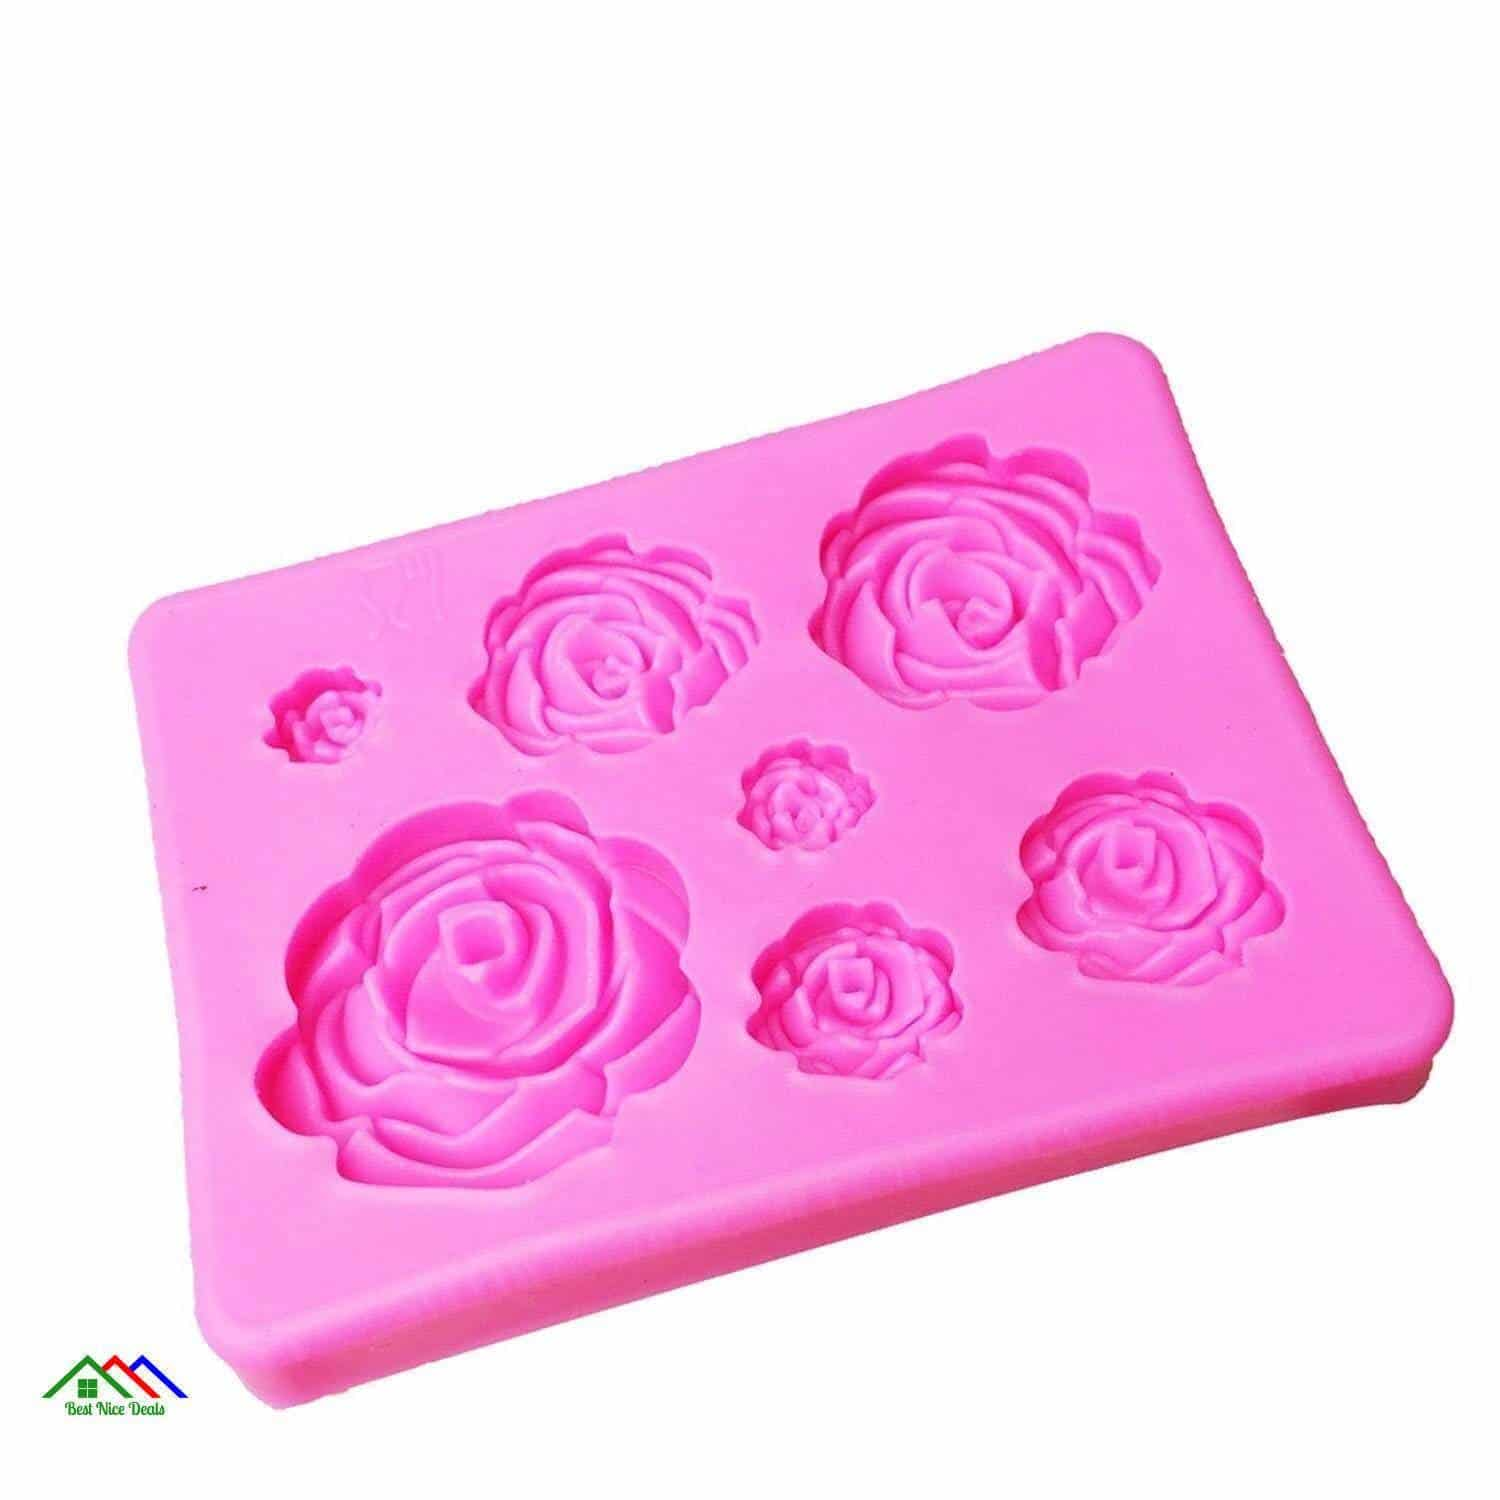 3D Roses Shaped Silicone Mold On Sale Kitchen Silicone Molds